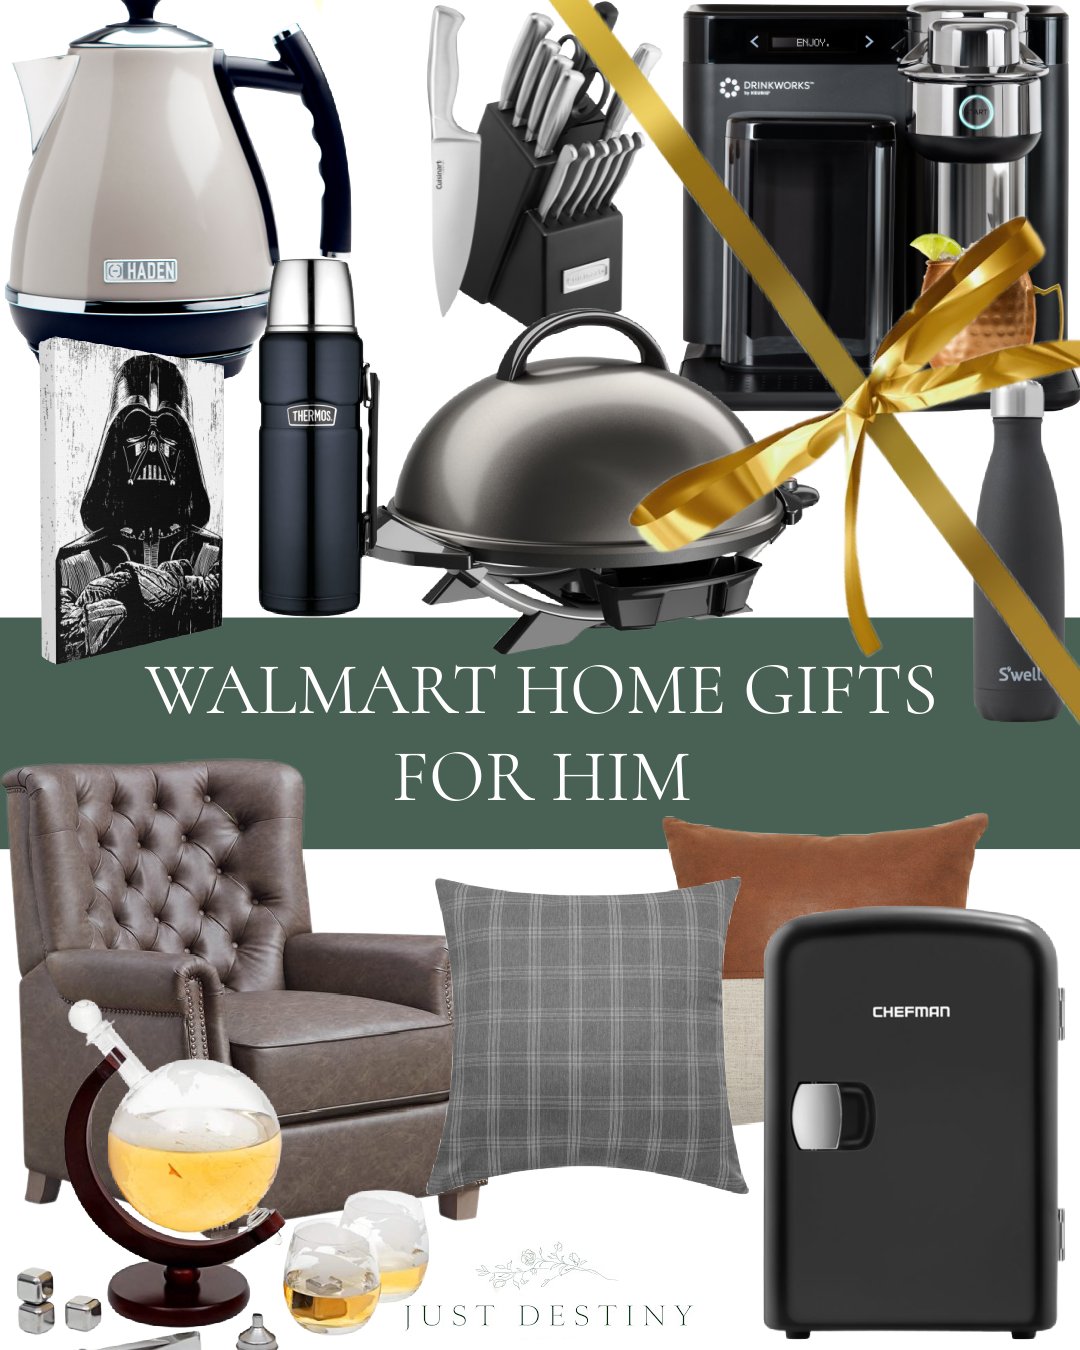 Walmart Home Gifts for him